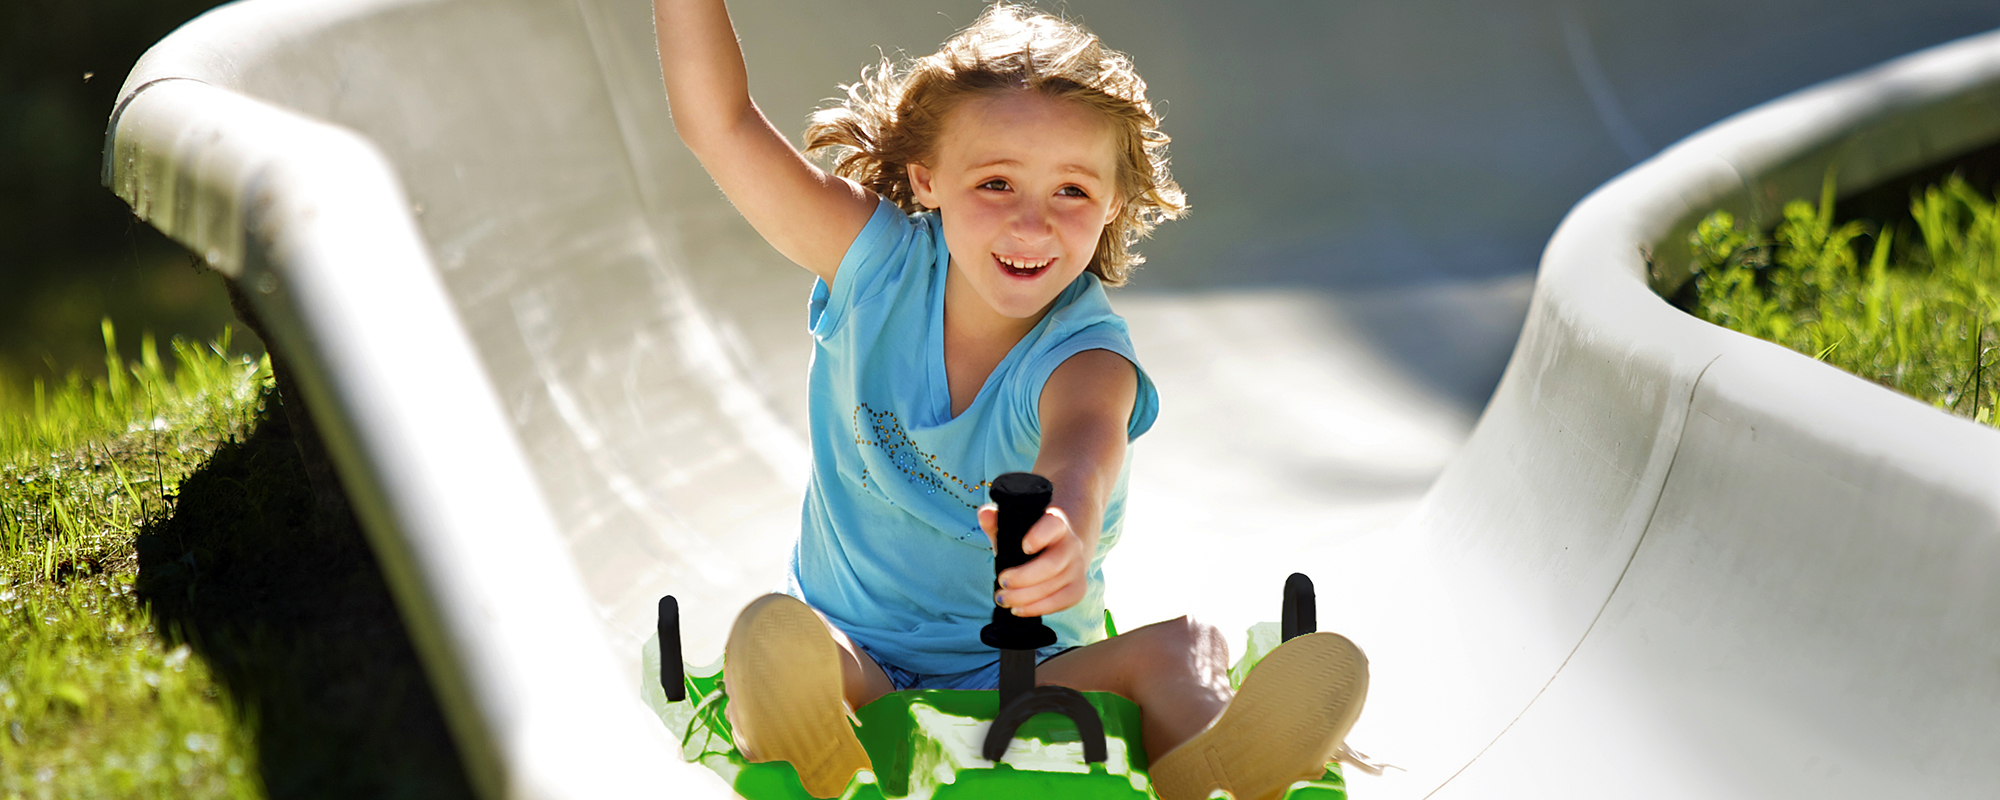 A young girl riding down the alpine slide with her arm up